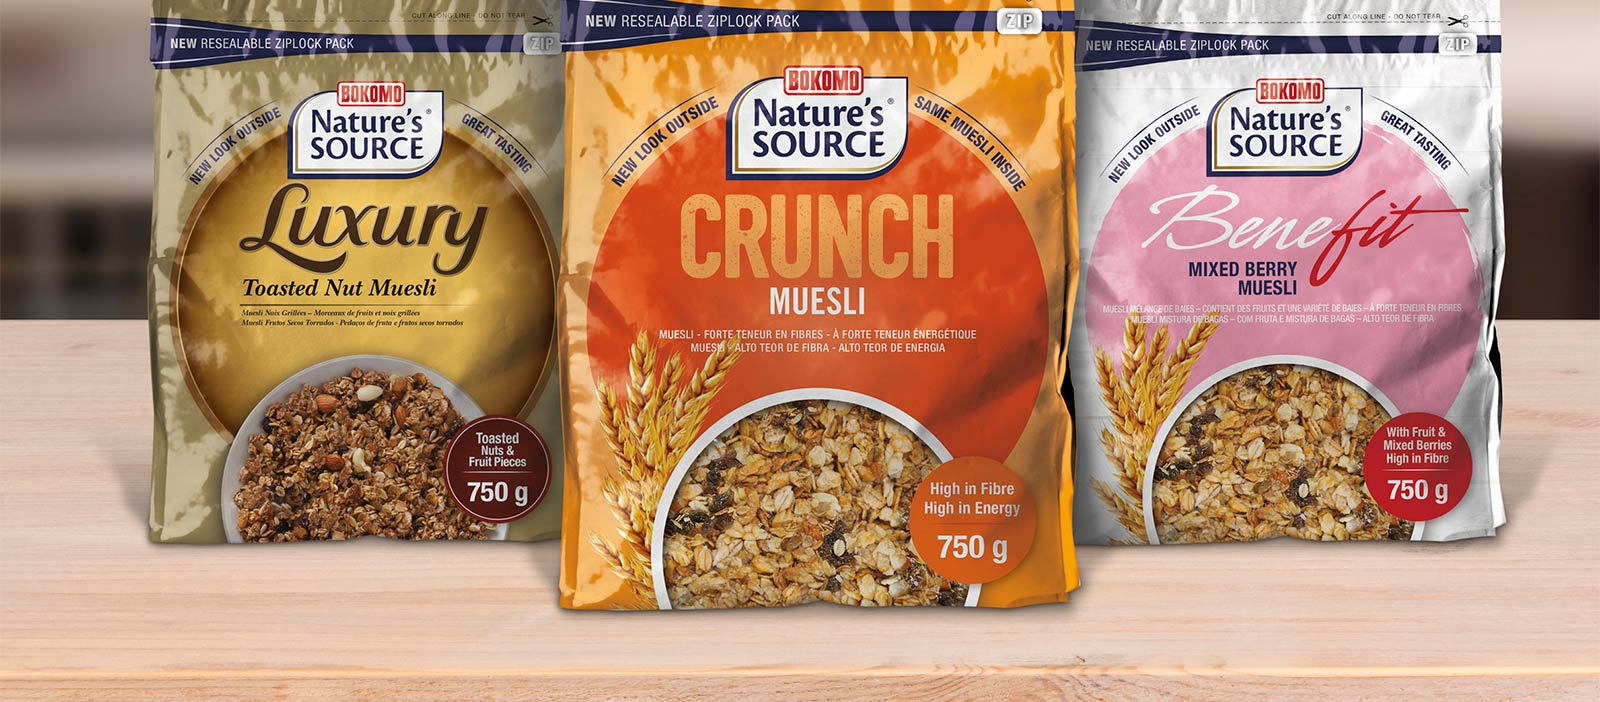 Natures Source muesli